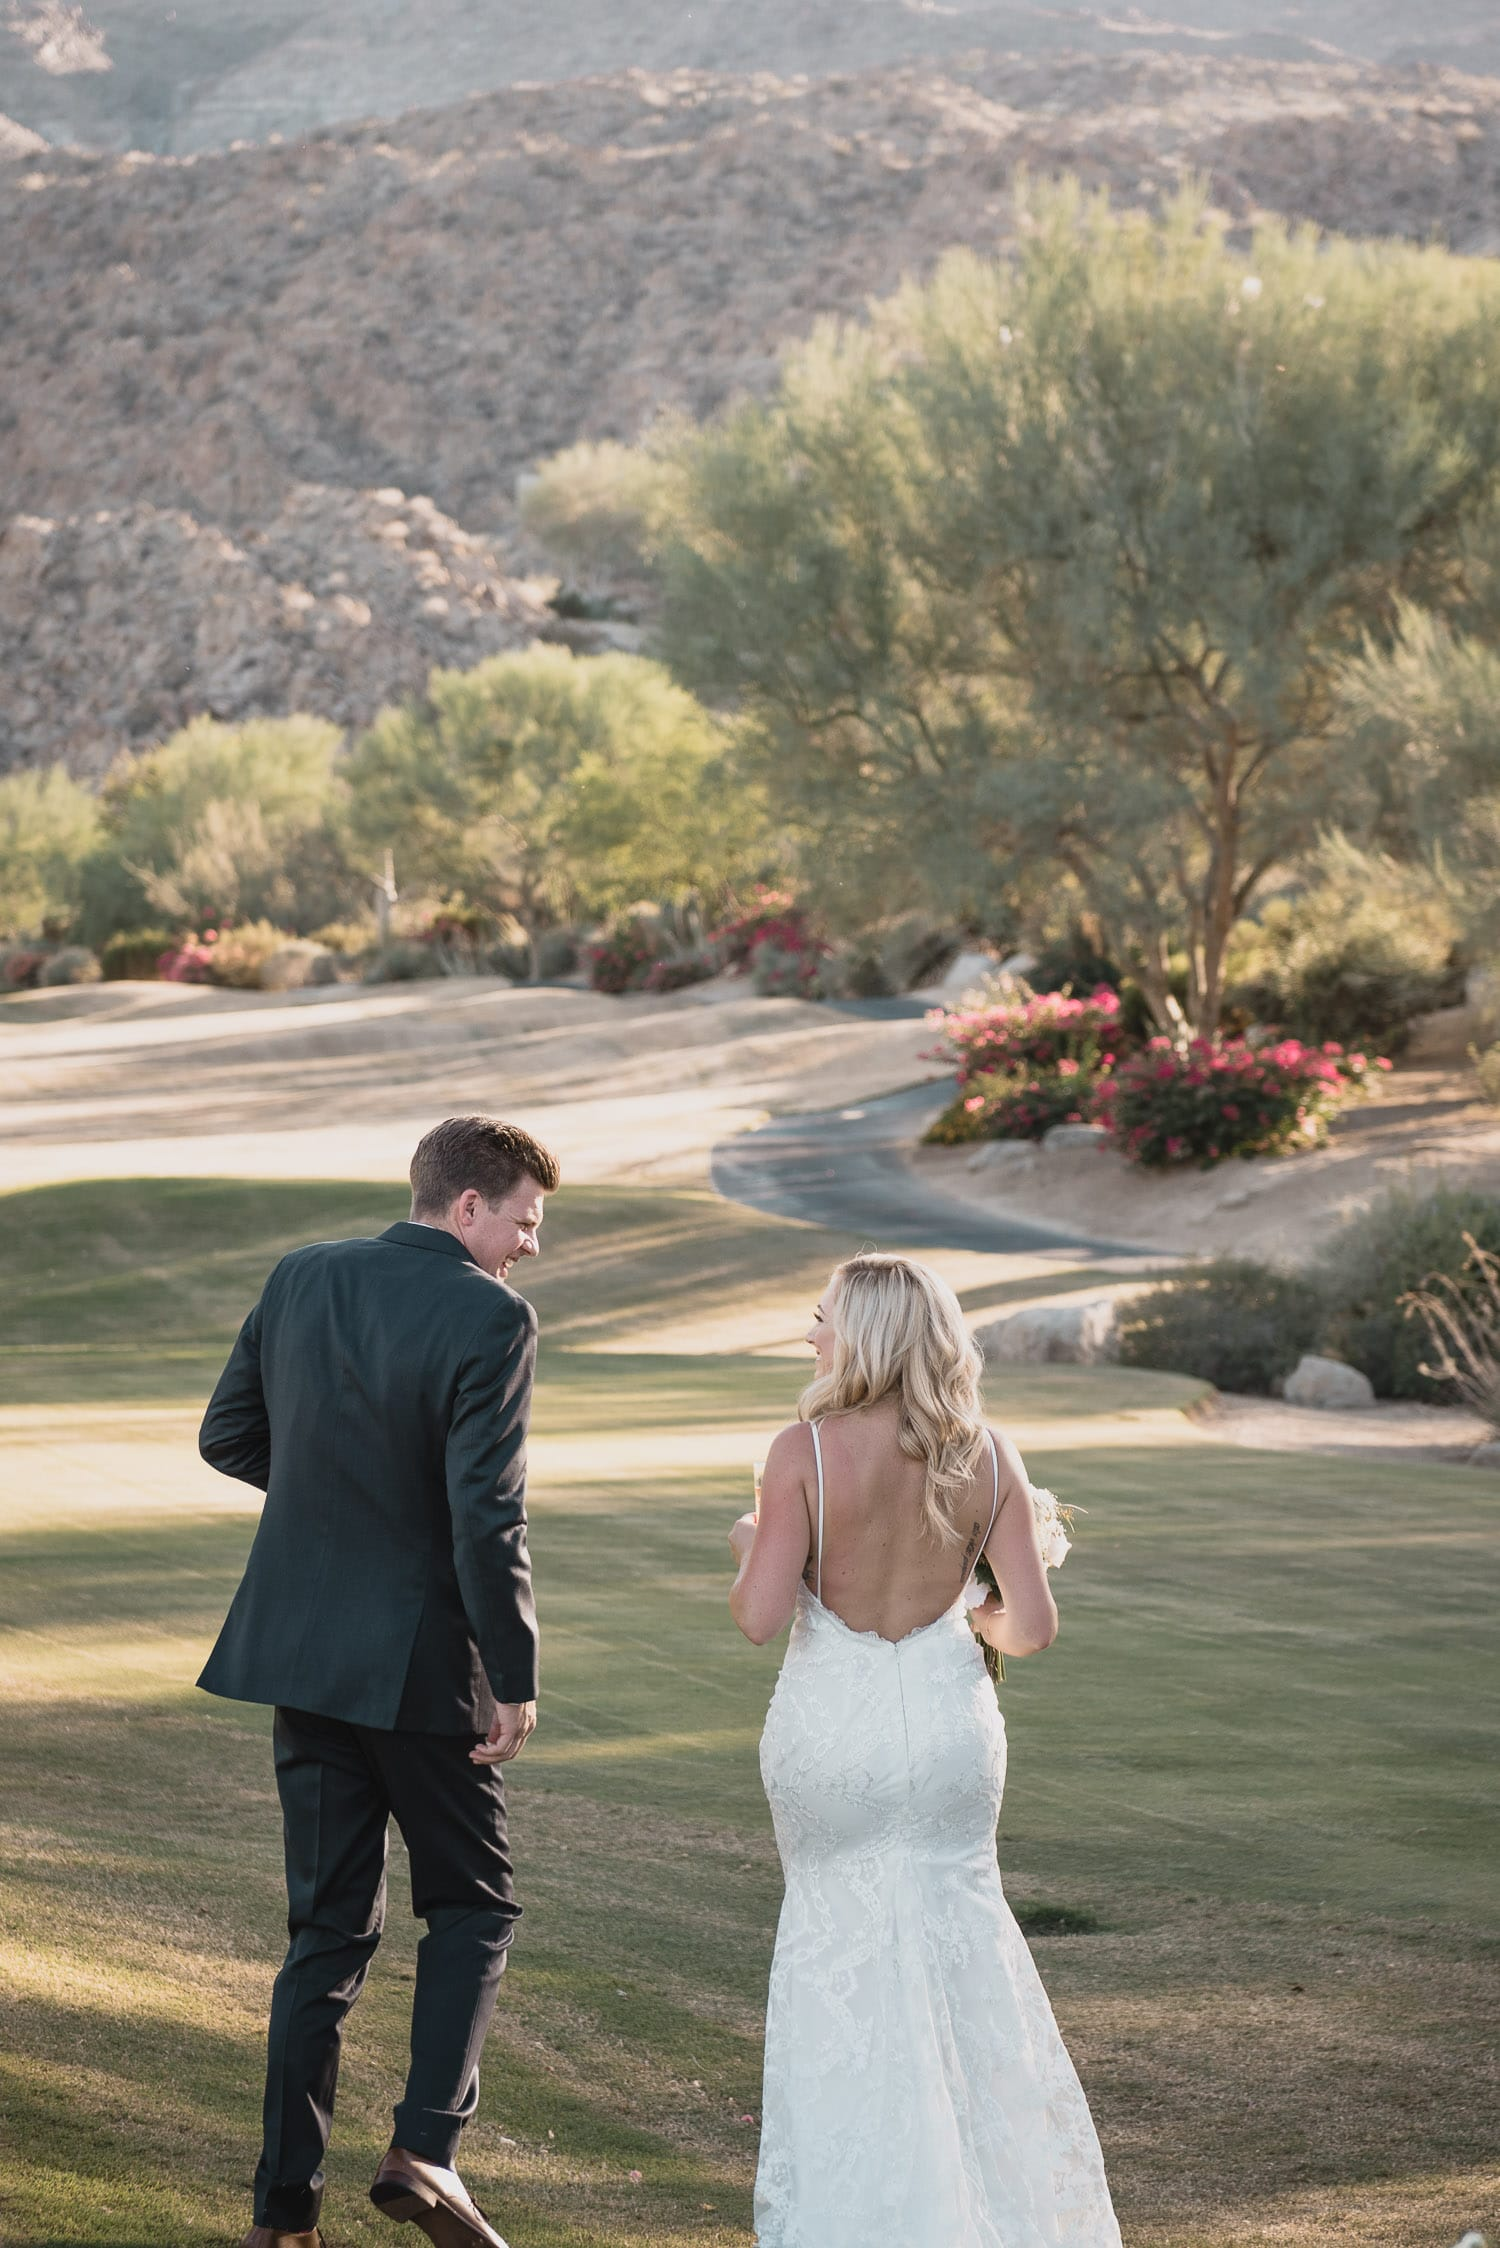 Tiffany + Robert Palm Springs Wedding 119